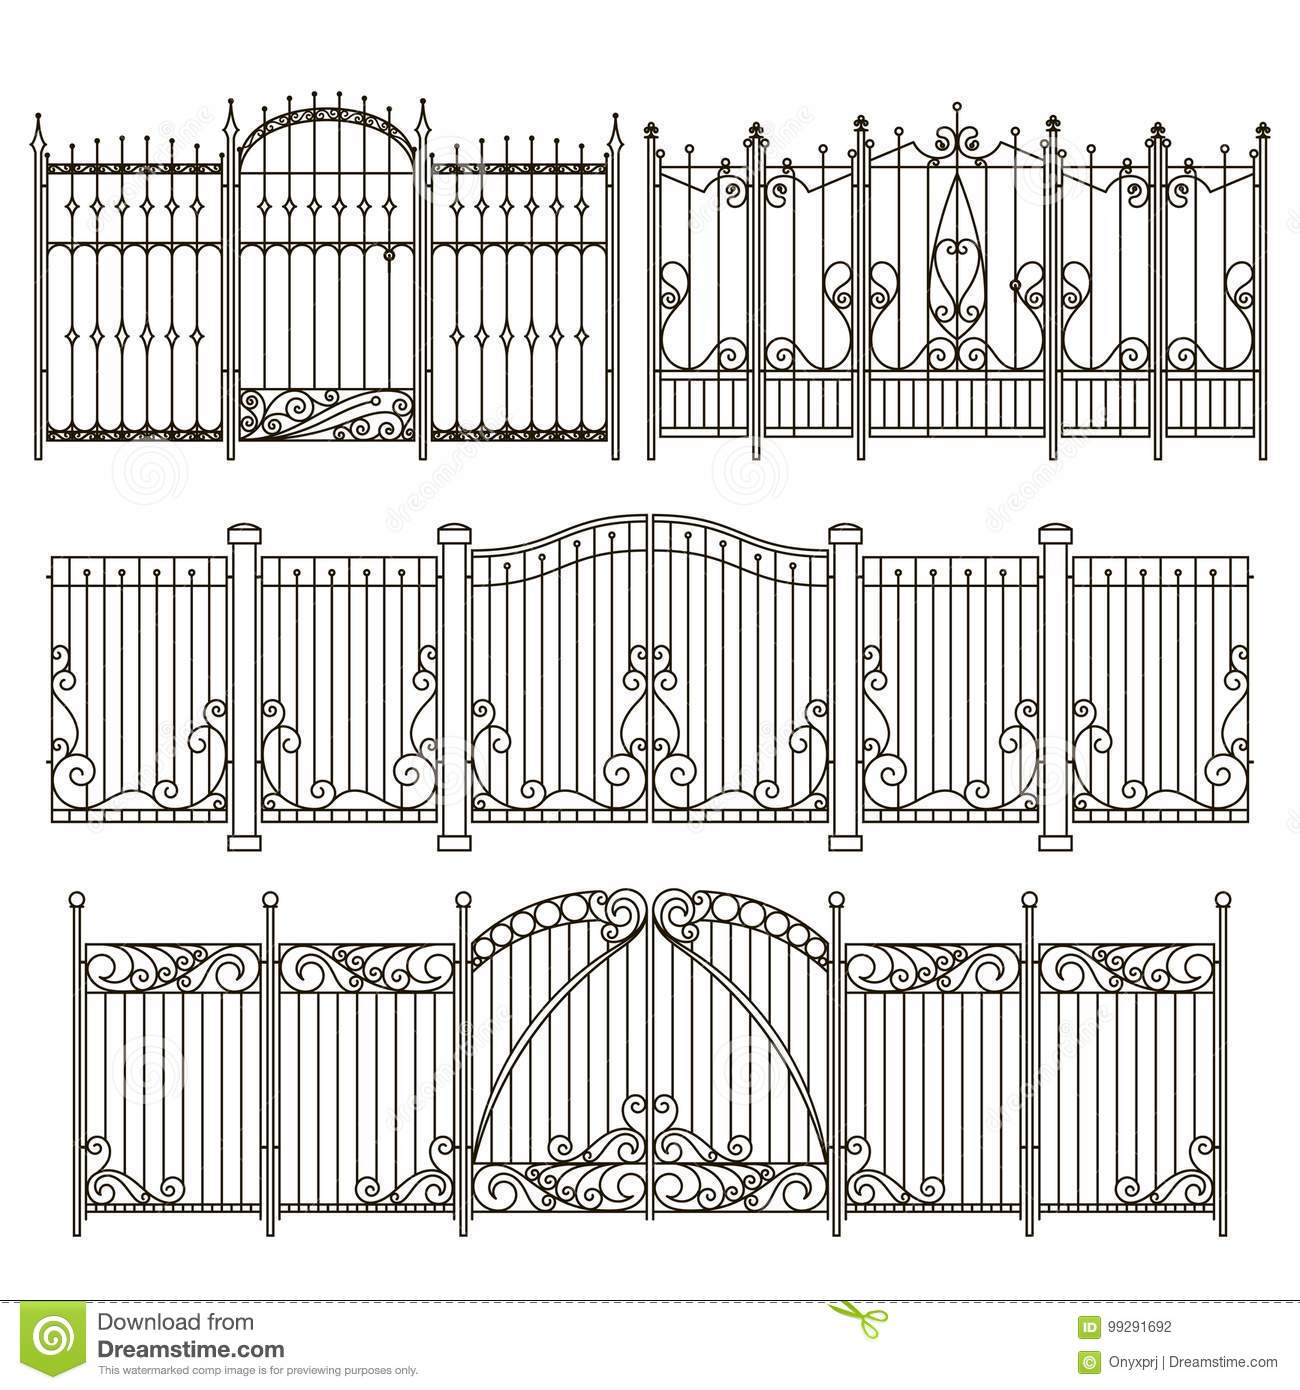 Metal fence design Privacy Iron Gate And Fence Design With Different Decorative Elements Vector Illustrations Custom Bedroom Doors Thecupcakestop Iron Gate And Fence Design With Different Decorative Elements